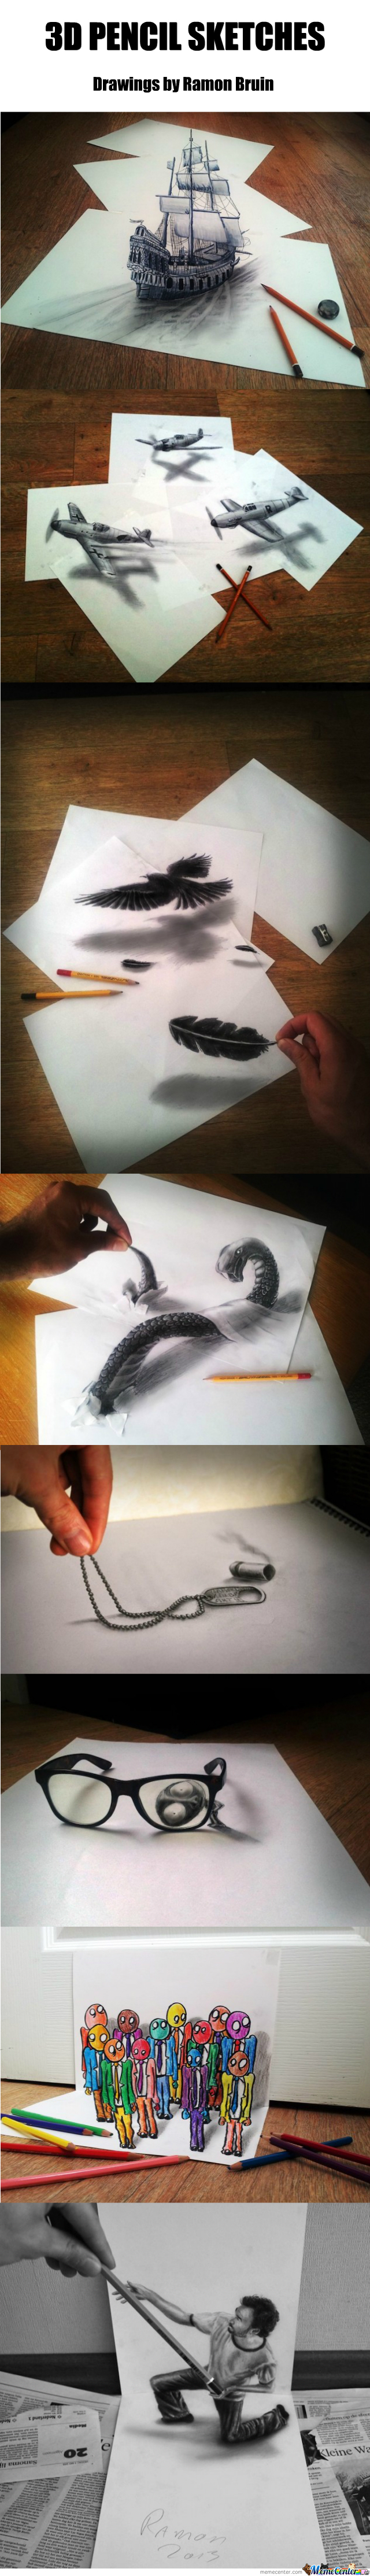 Amazing 3D Pencil Sketches